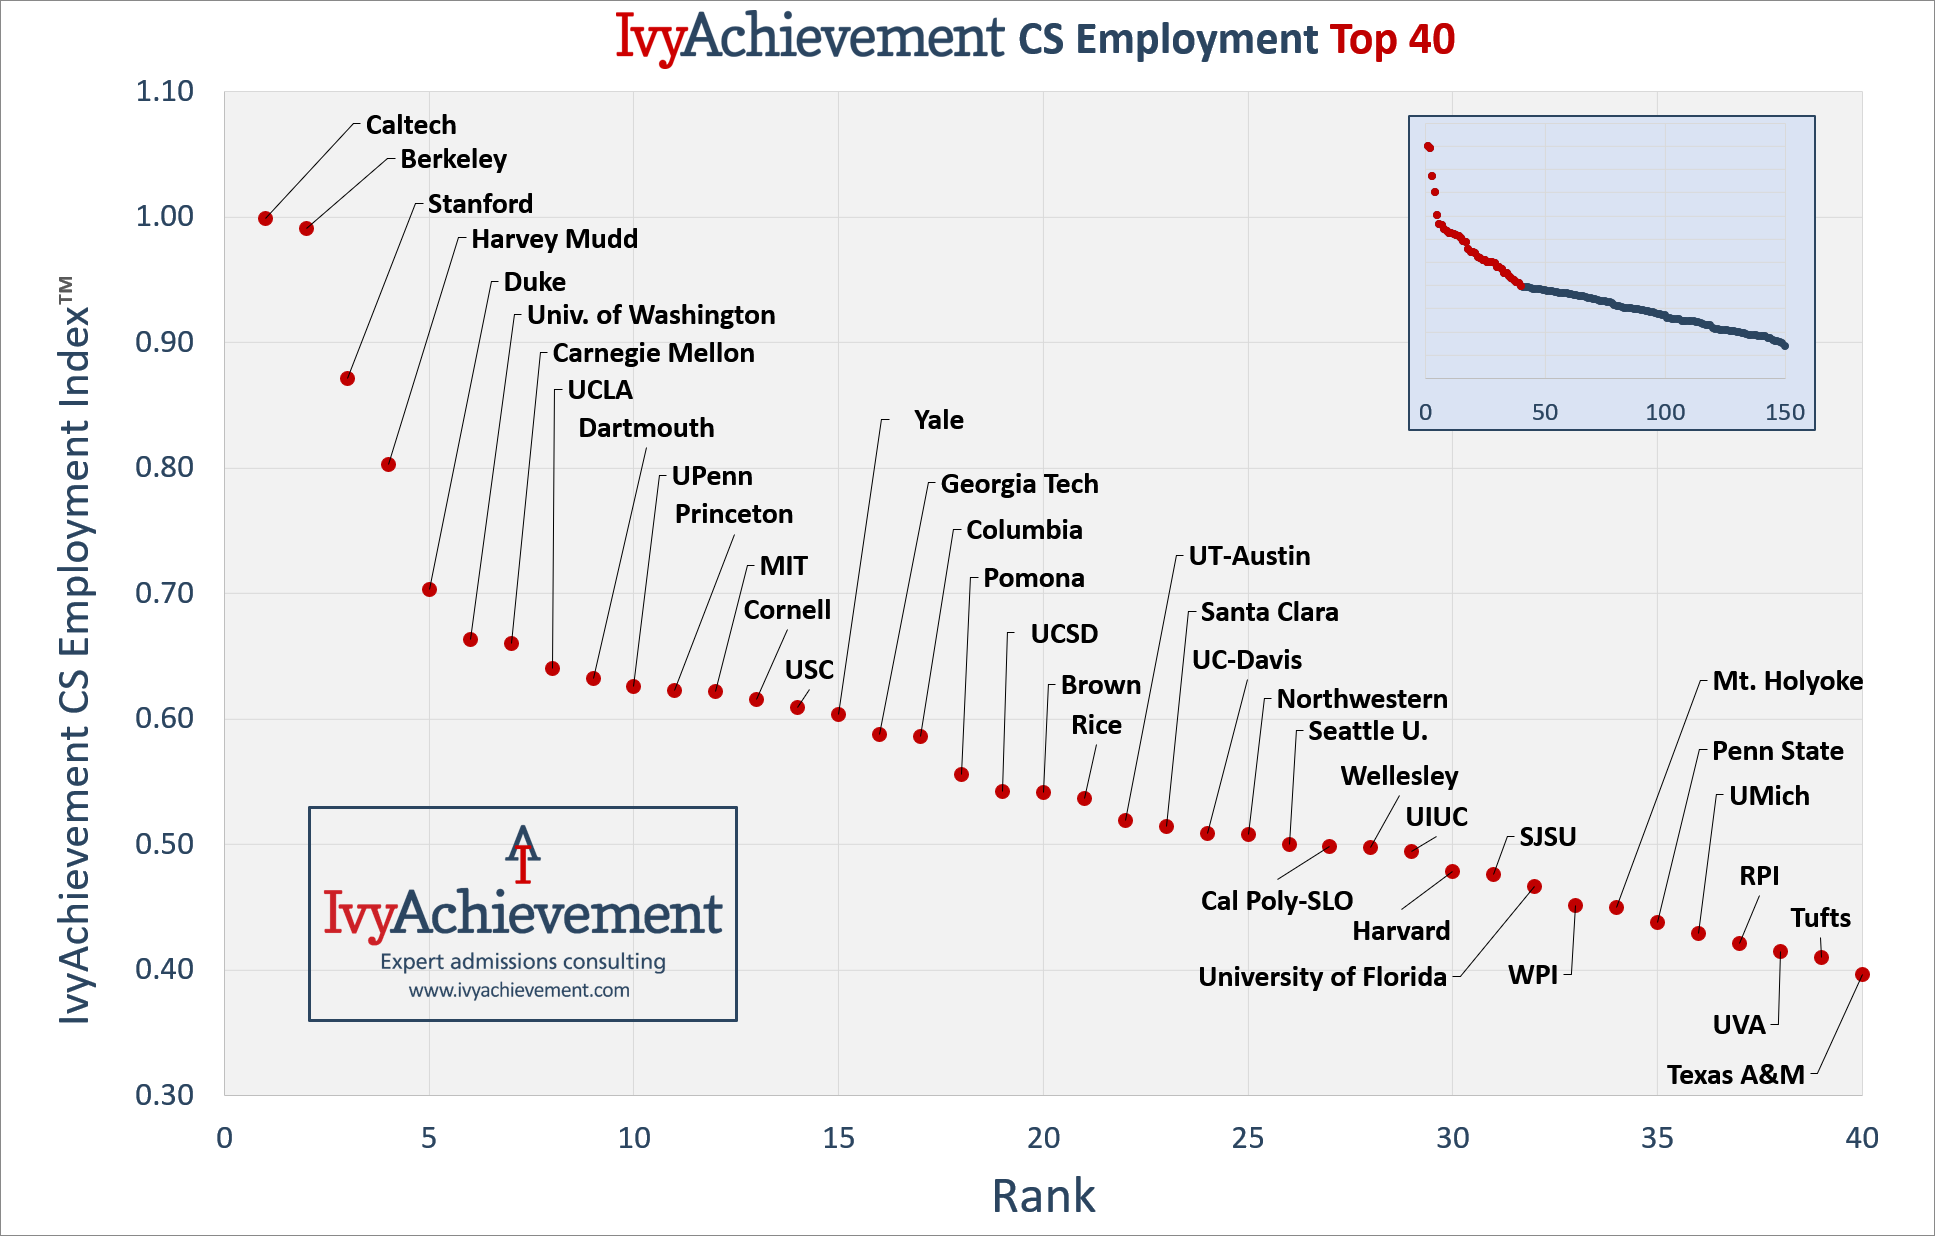 IvyAchievement CS Employment - top 40 graph